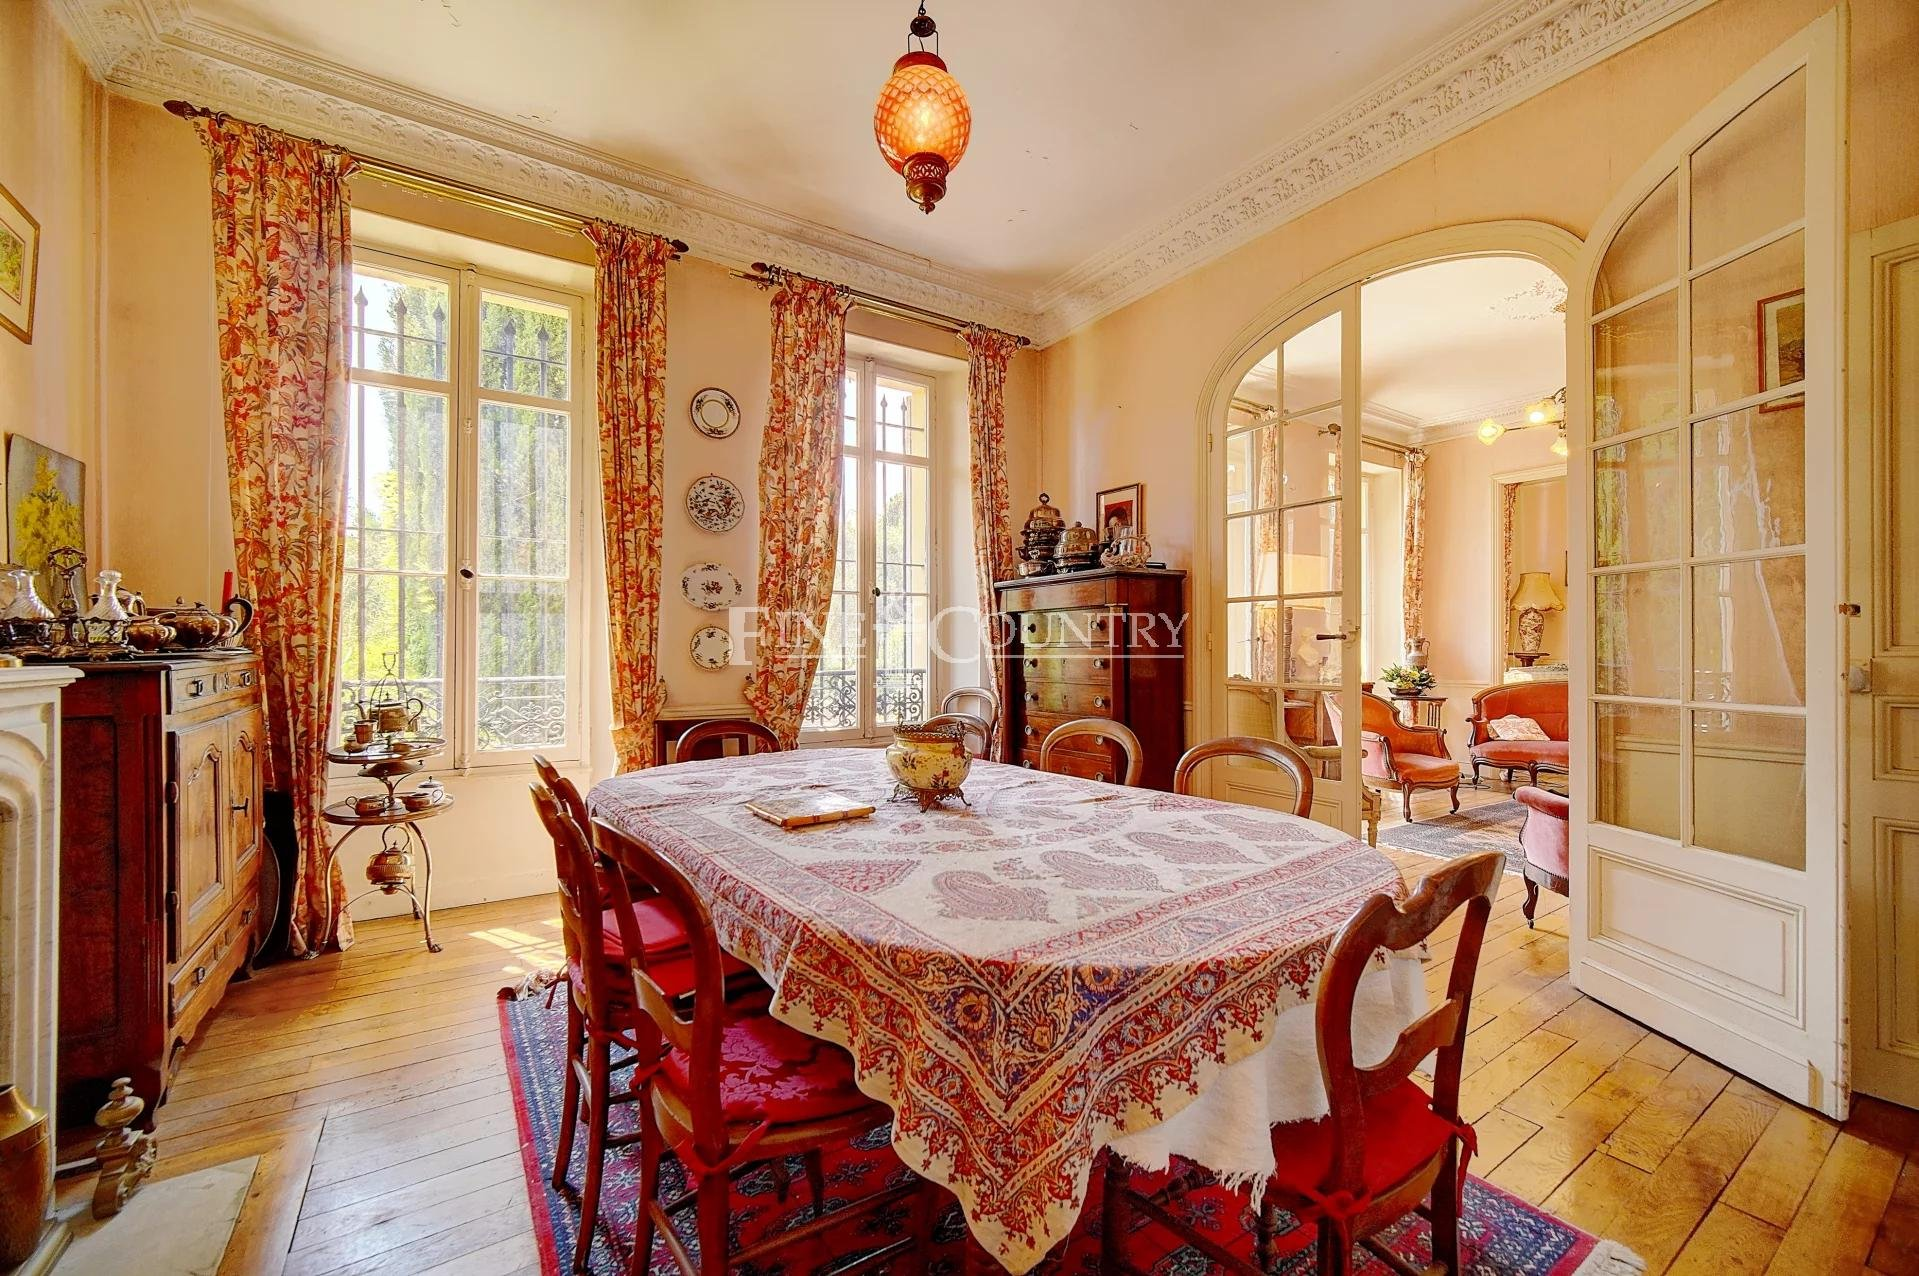 Historic Bourgeois 19th century Villa for Sale in Cannes